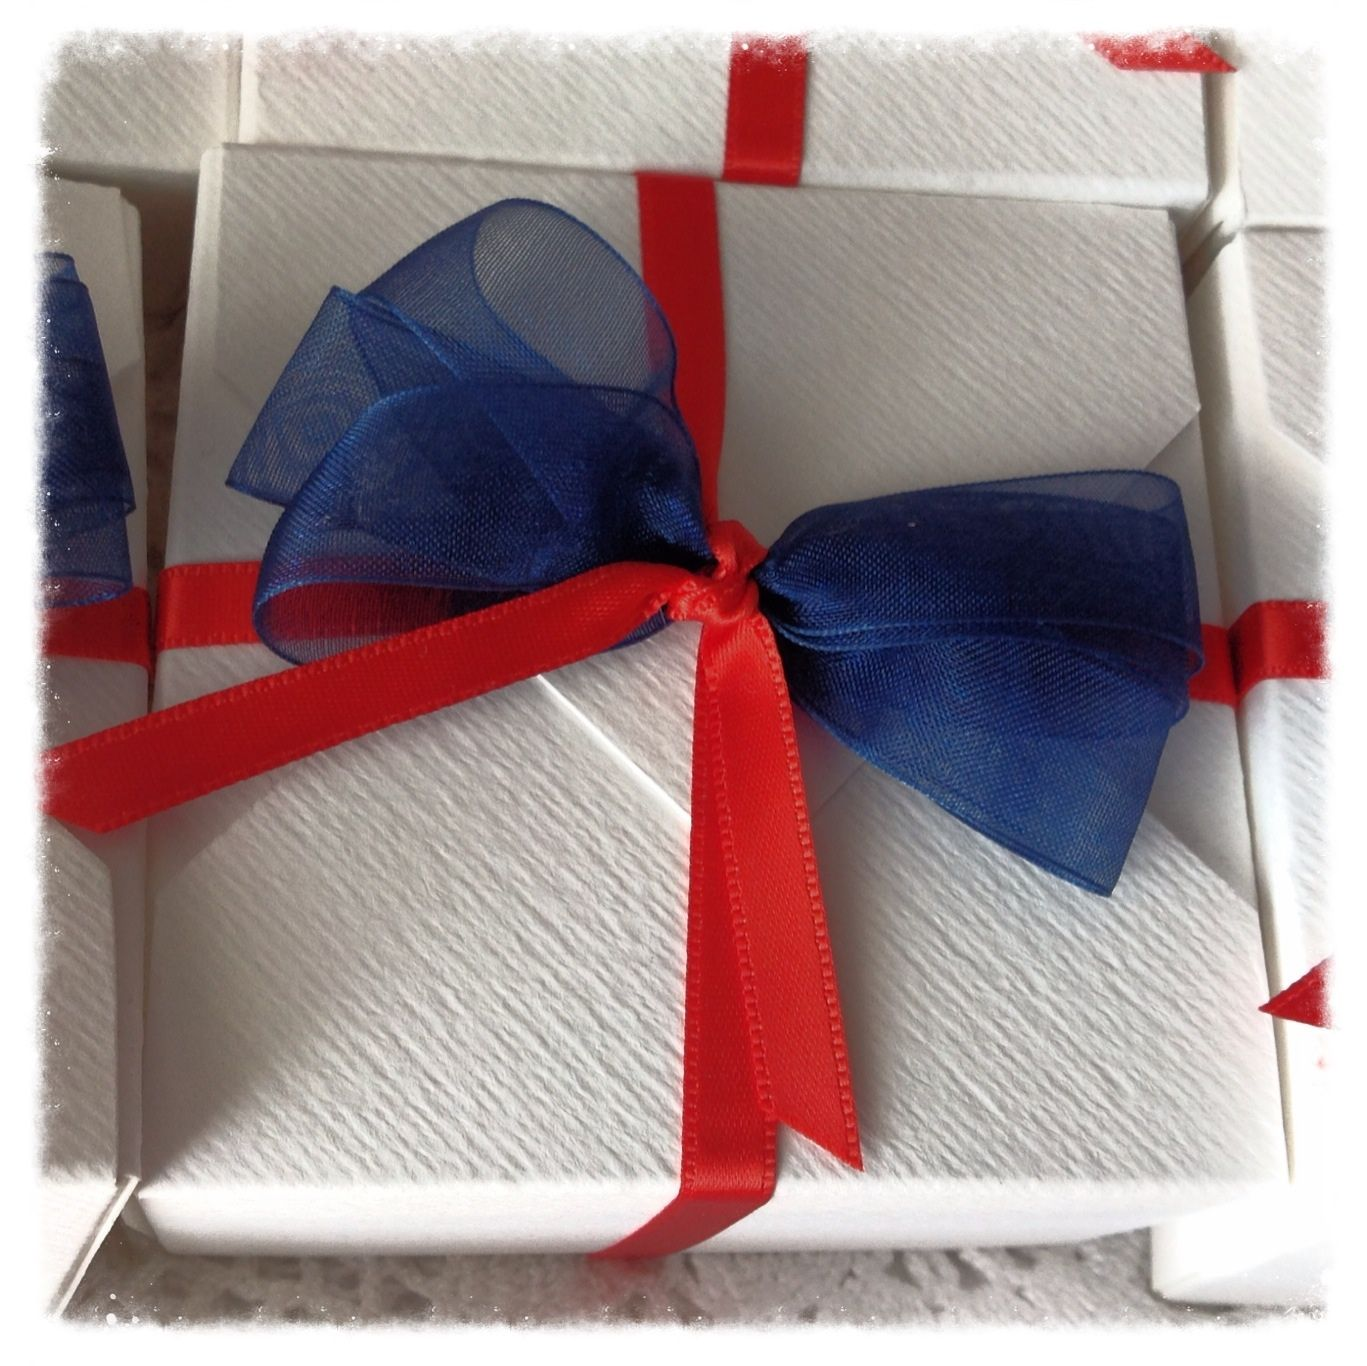 Christening favors - for a boy, of course. White + red are traditional. Love the added touch of blue.